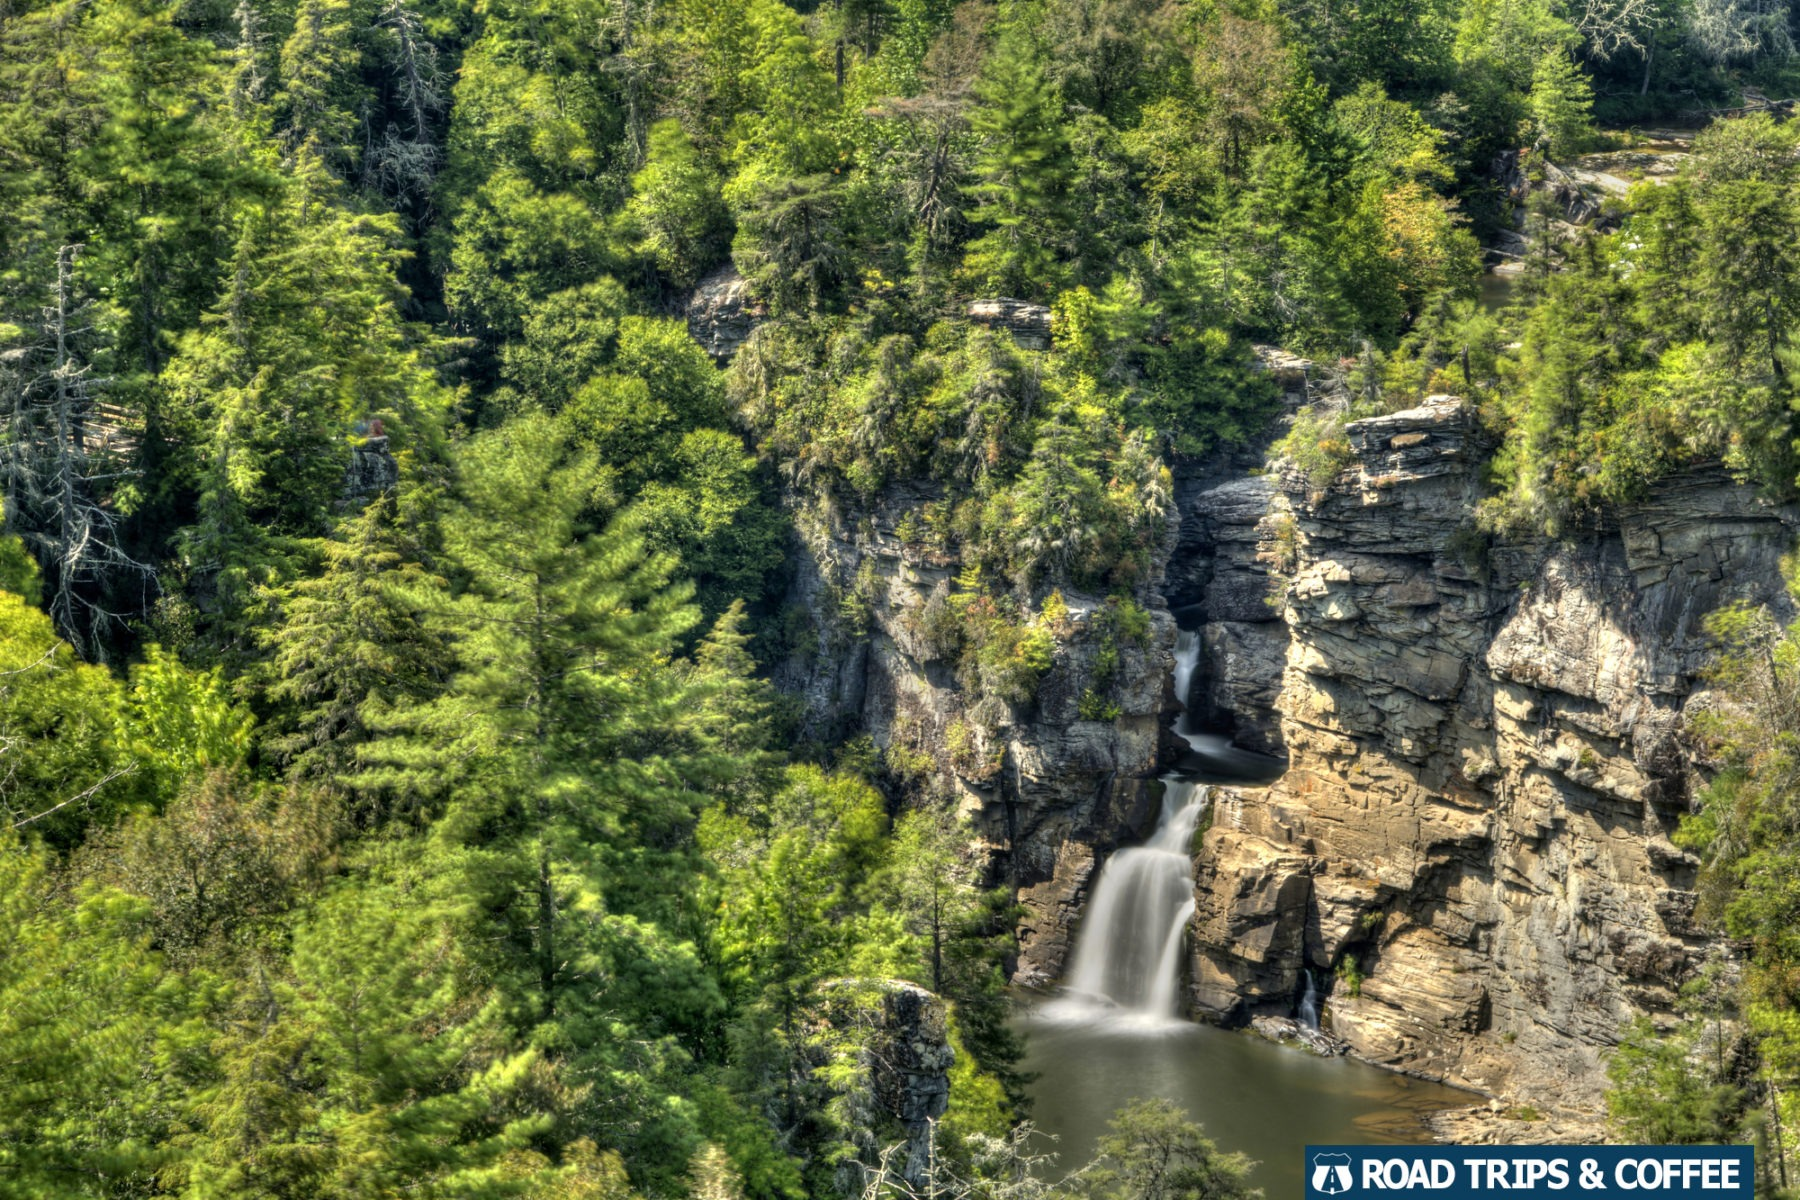 View of Linville Falls on the Blue Ridge Parkway in North Carolina